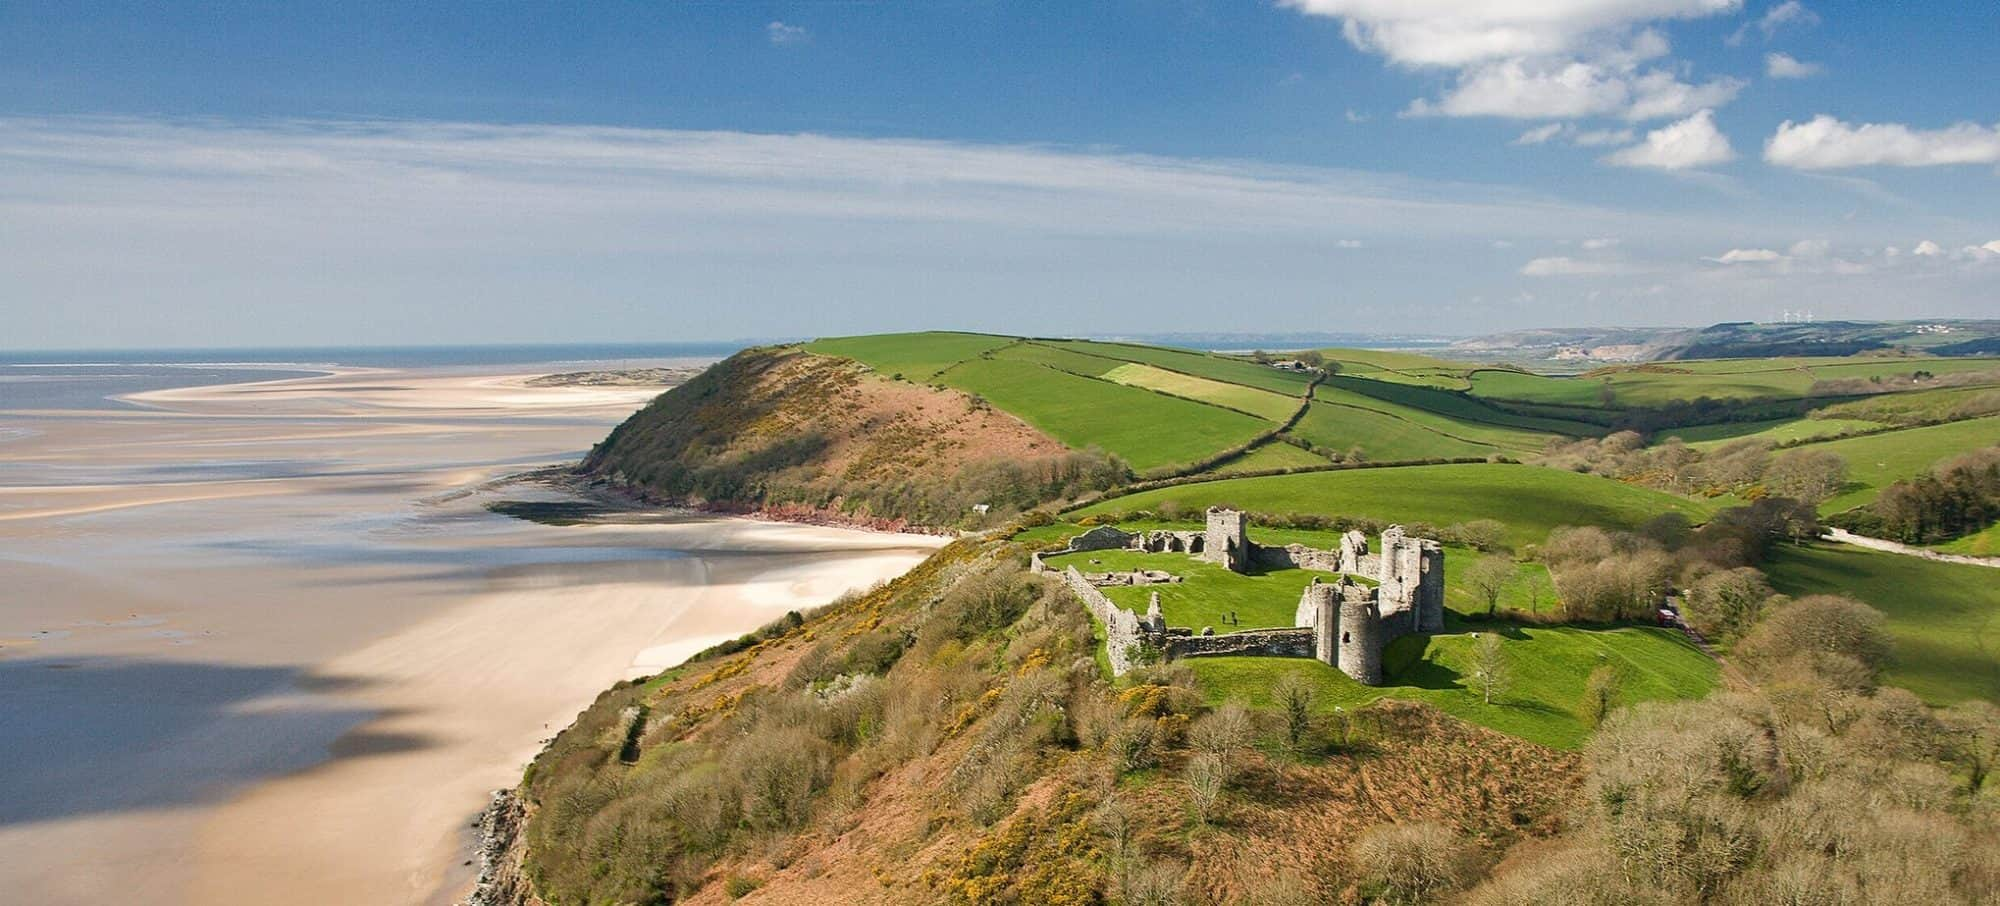 Llansteffan Castle on the Carmarthenshire coastal path